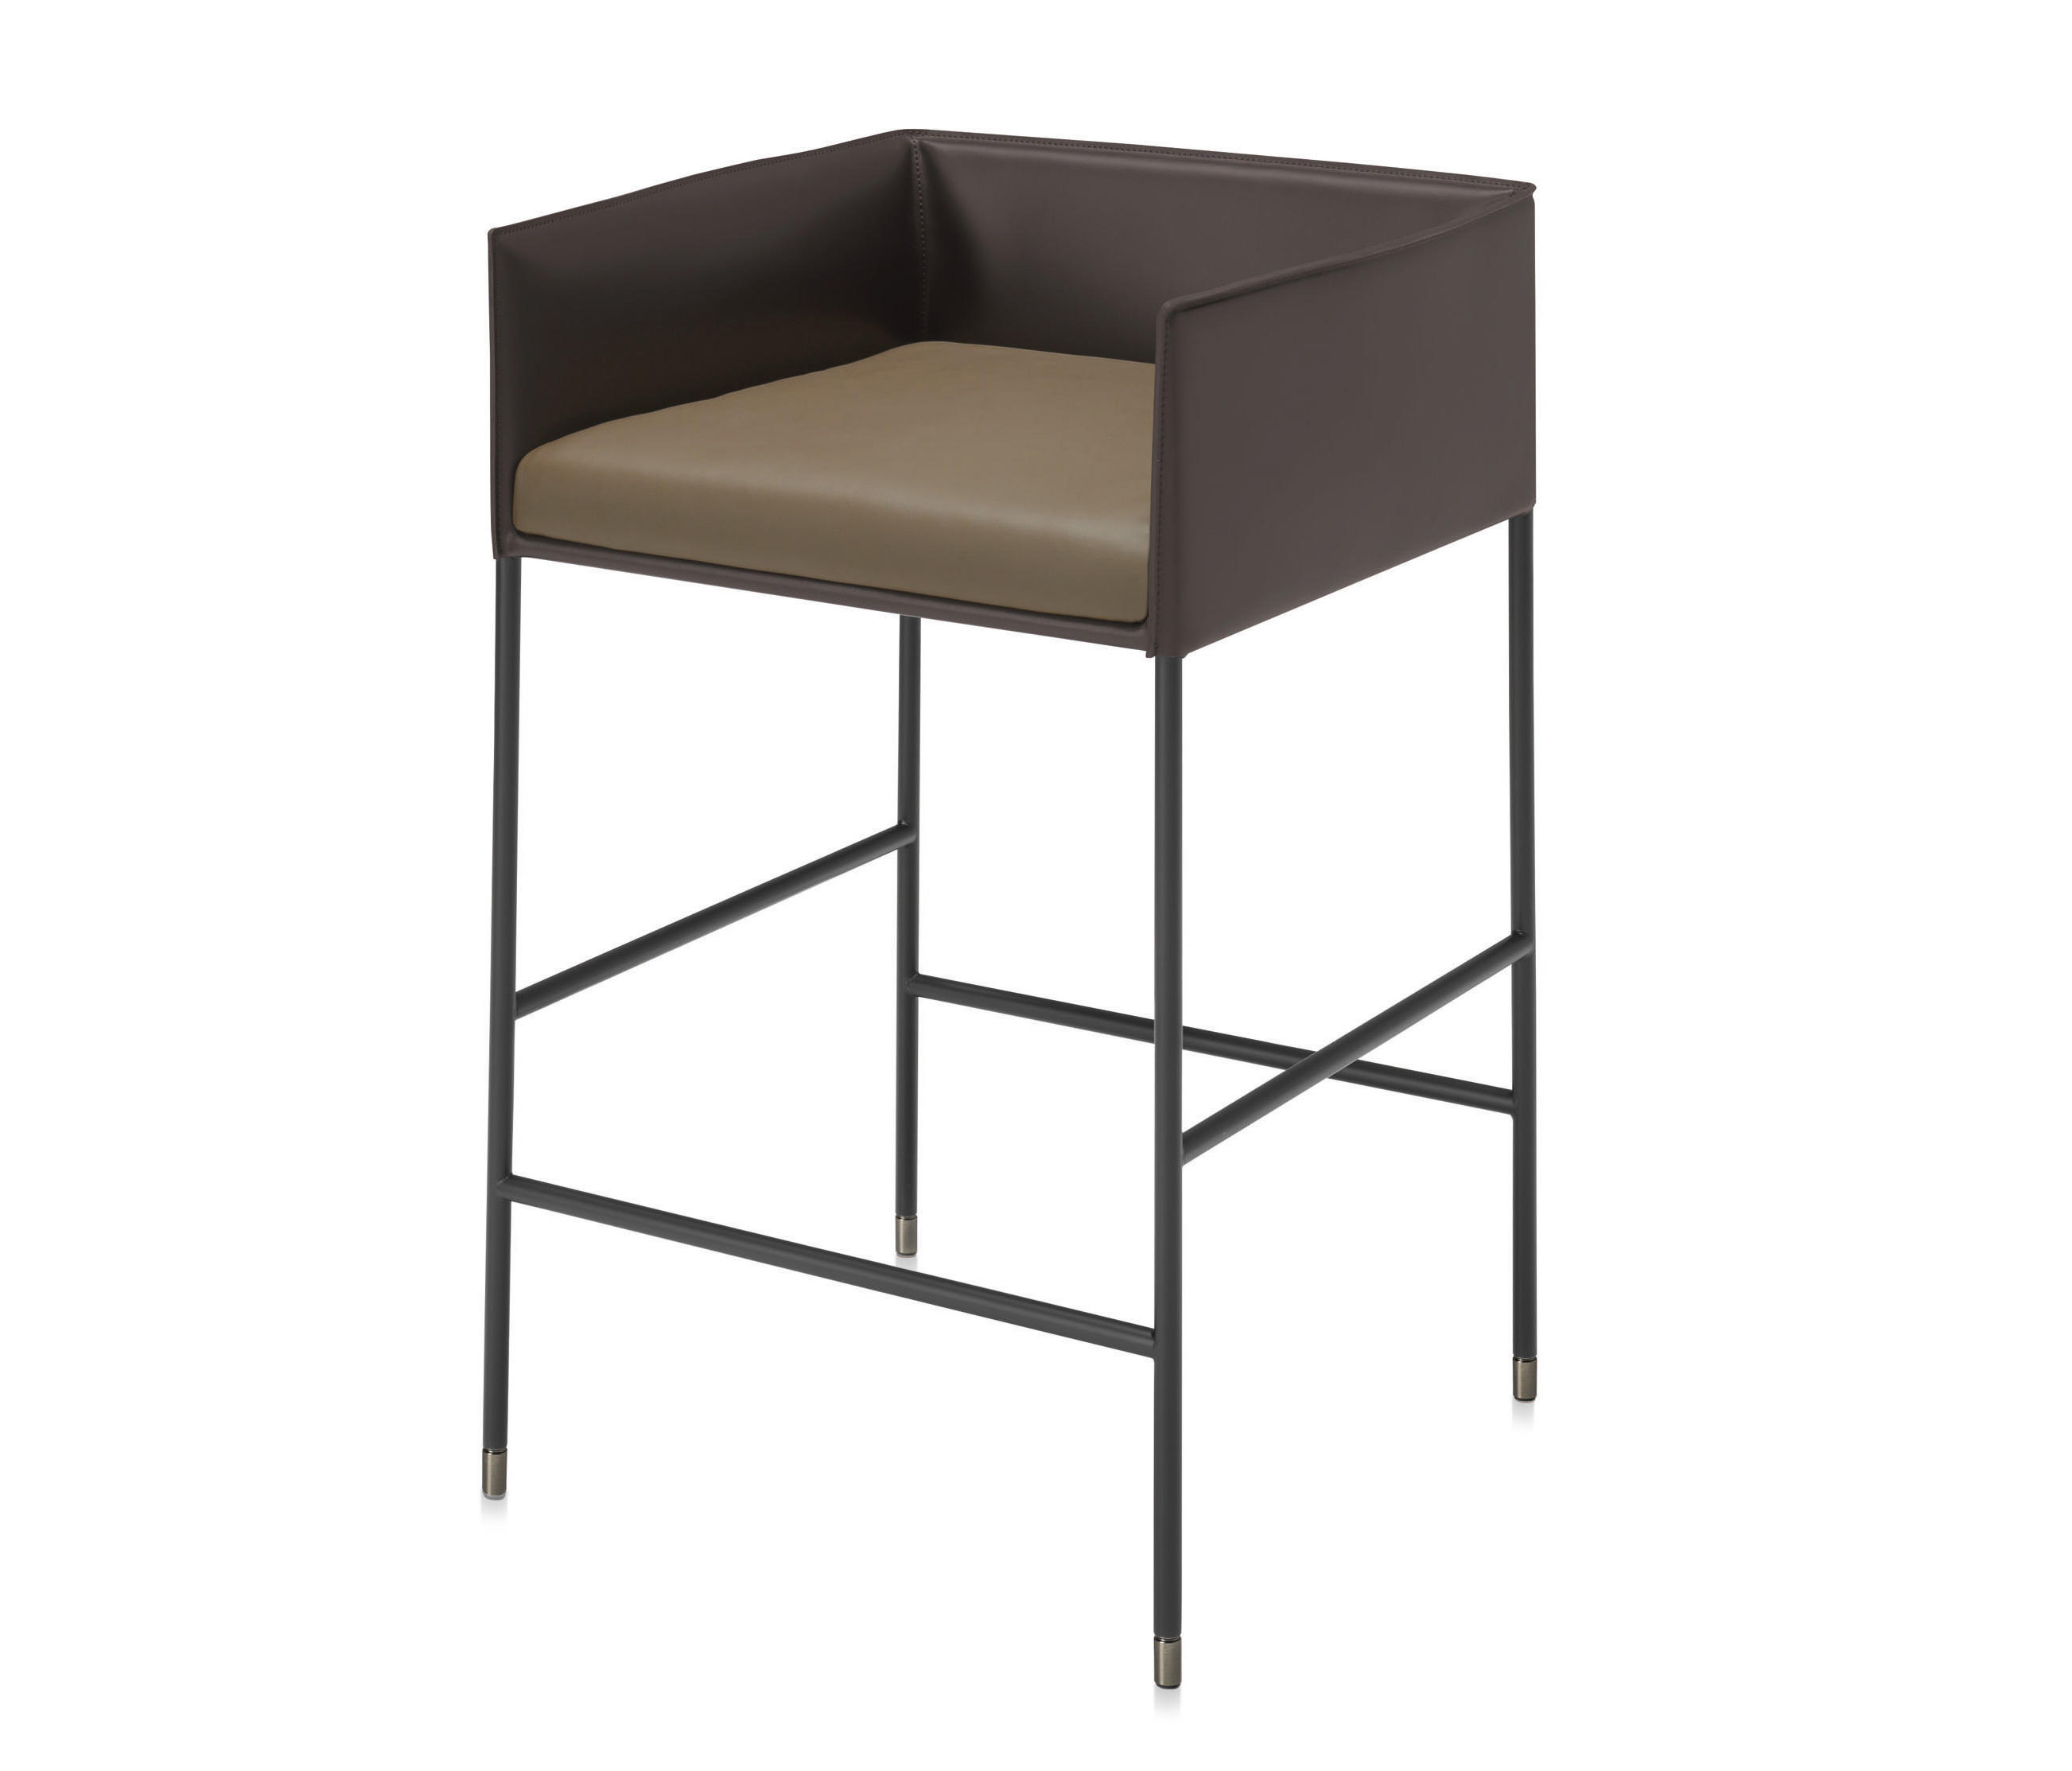 solid jcu wood product seat furniture square clarke low stool